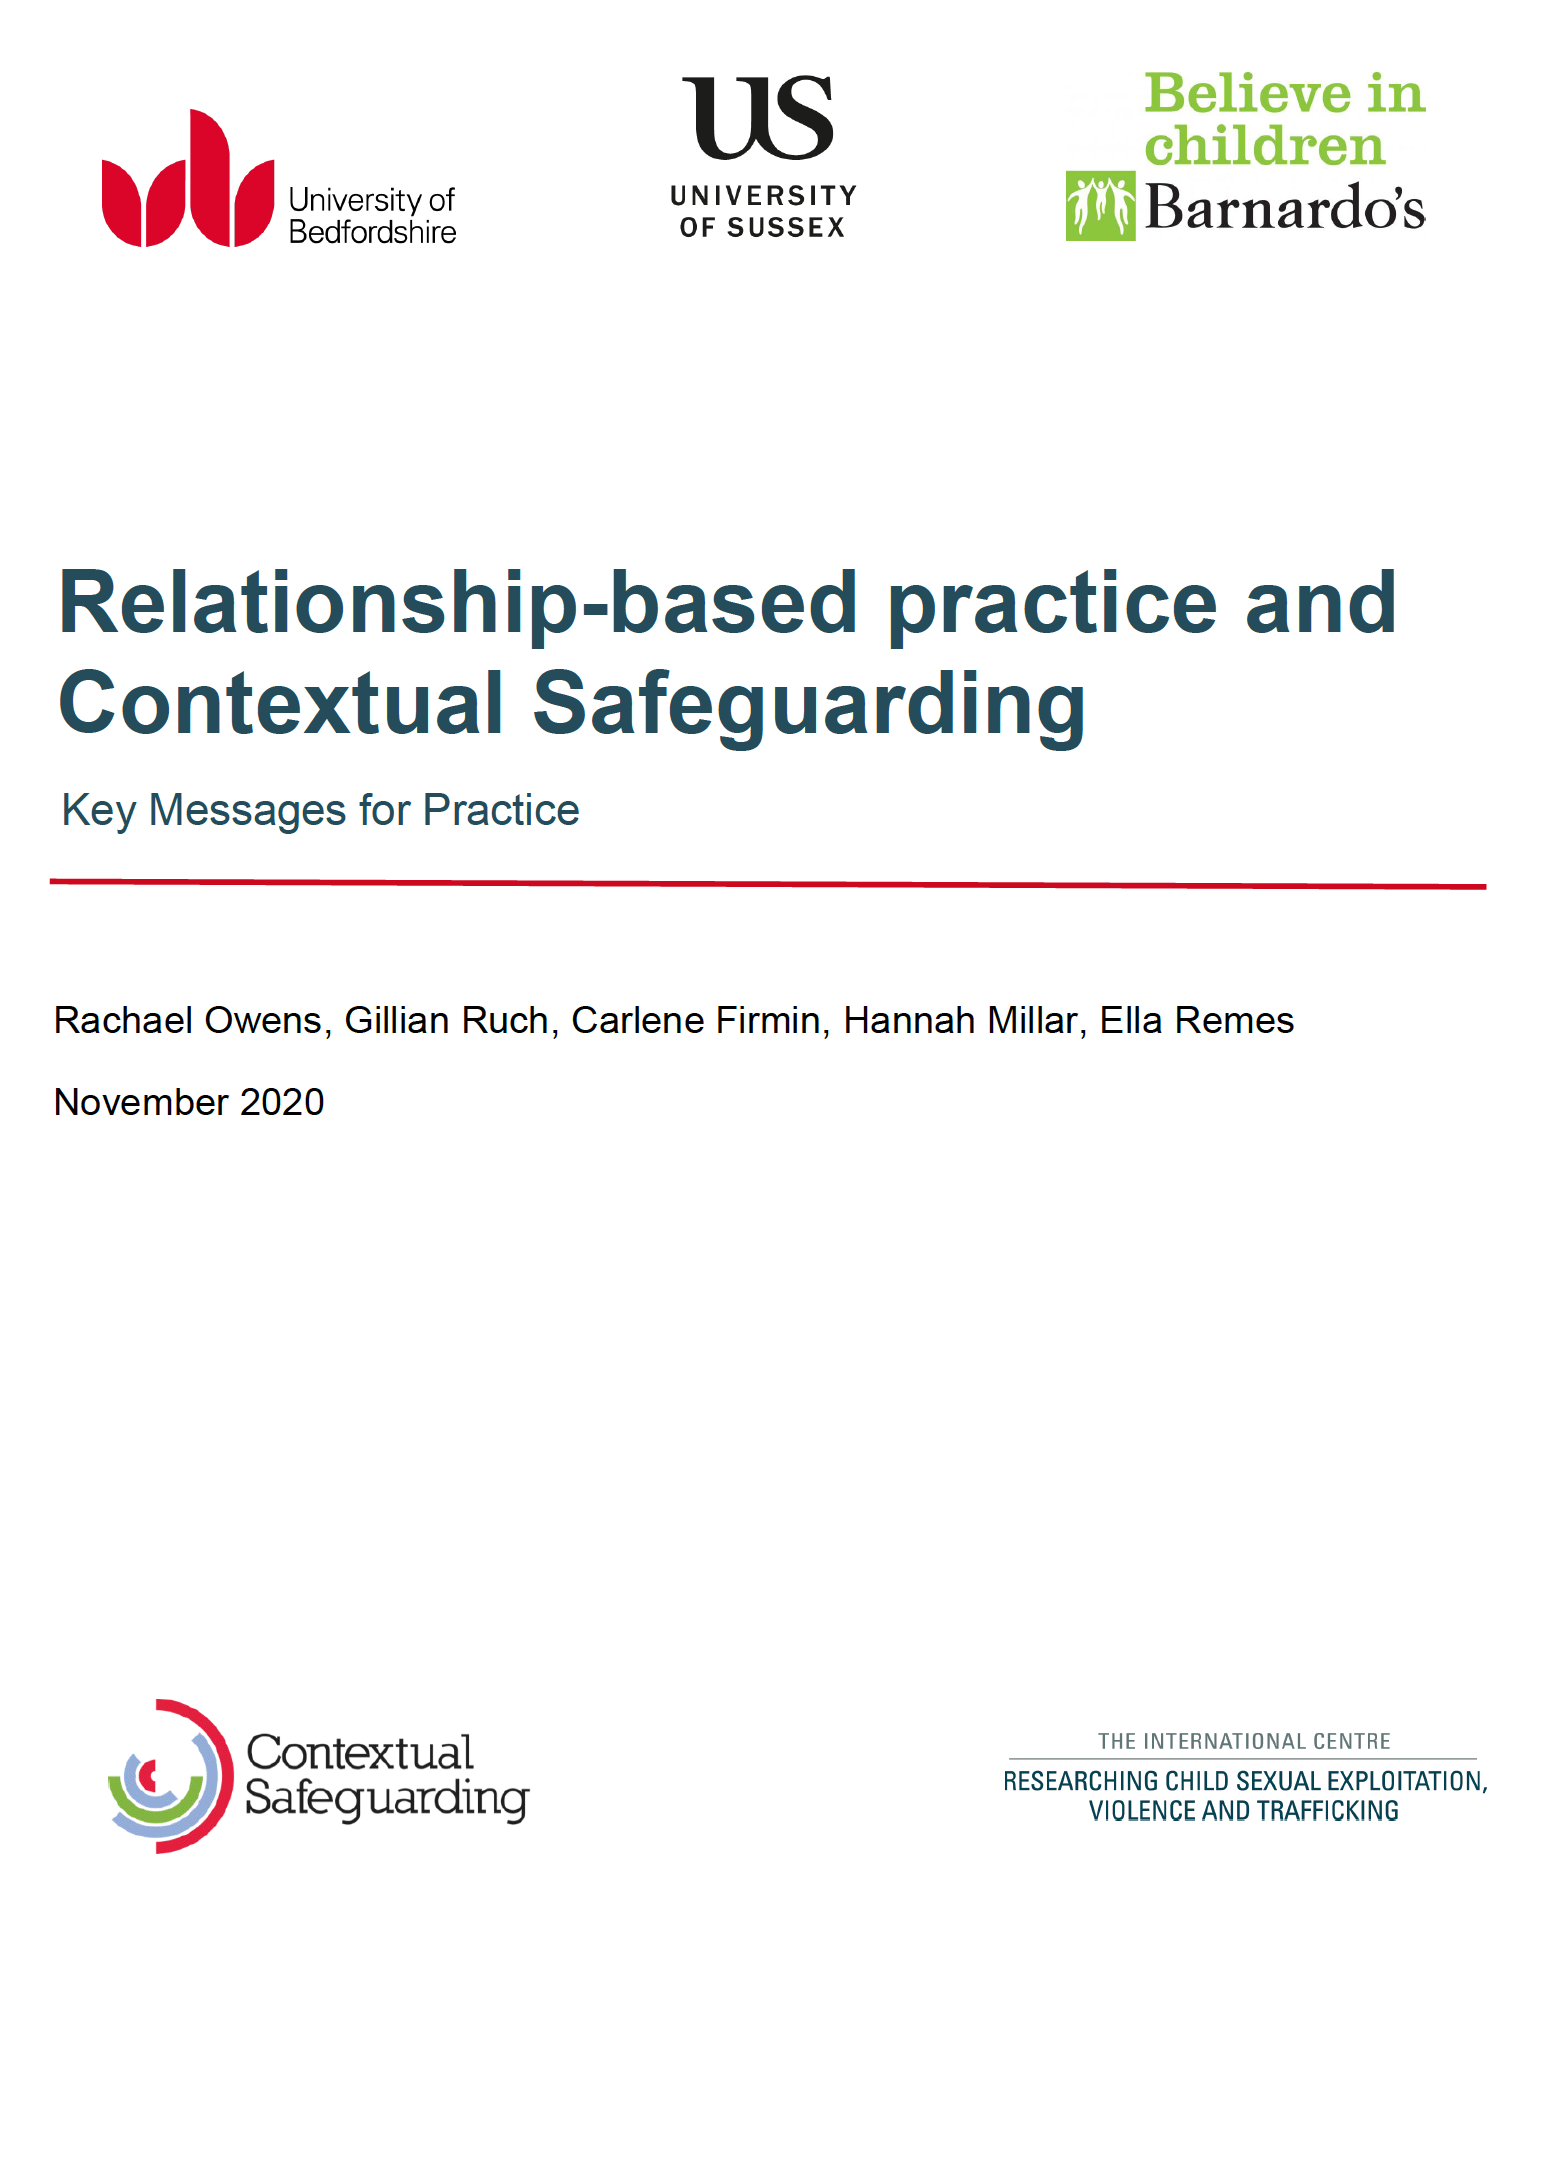 Relationship-based Practice and Contextual Safeguarding